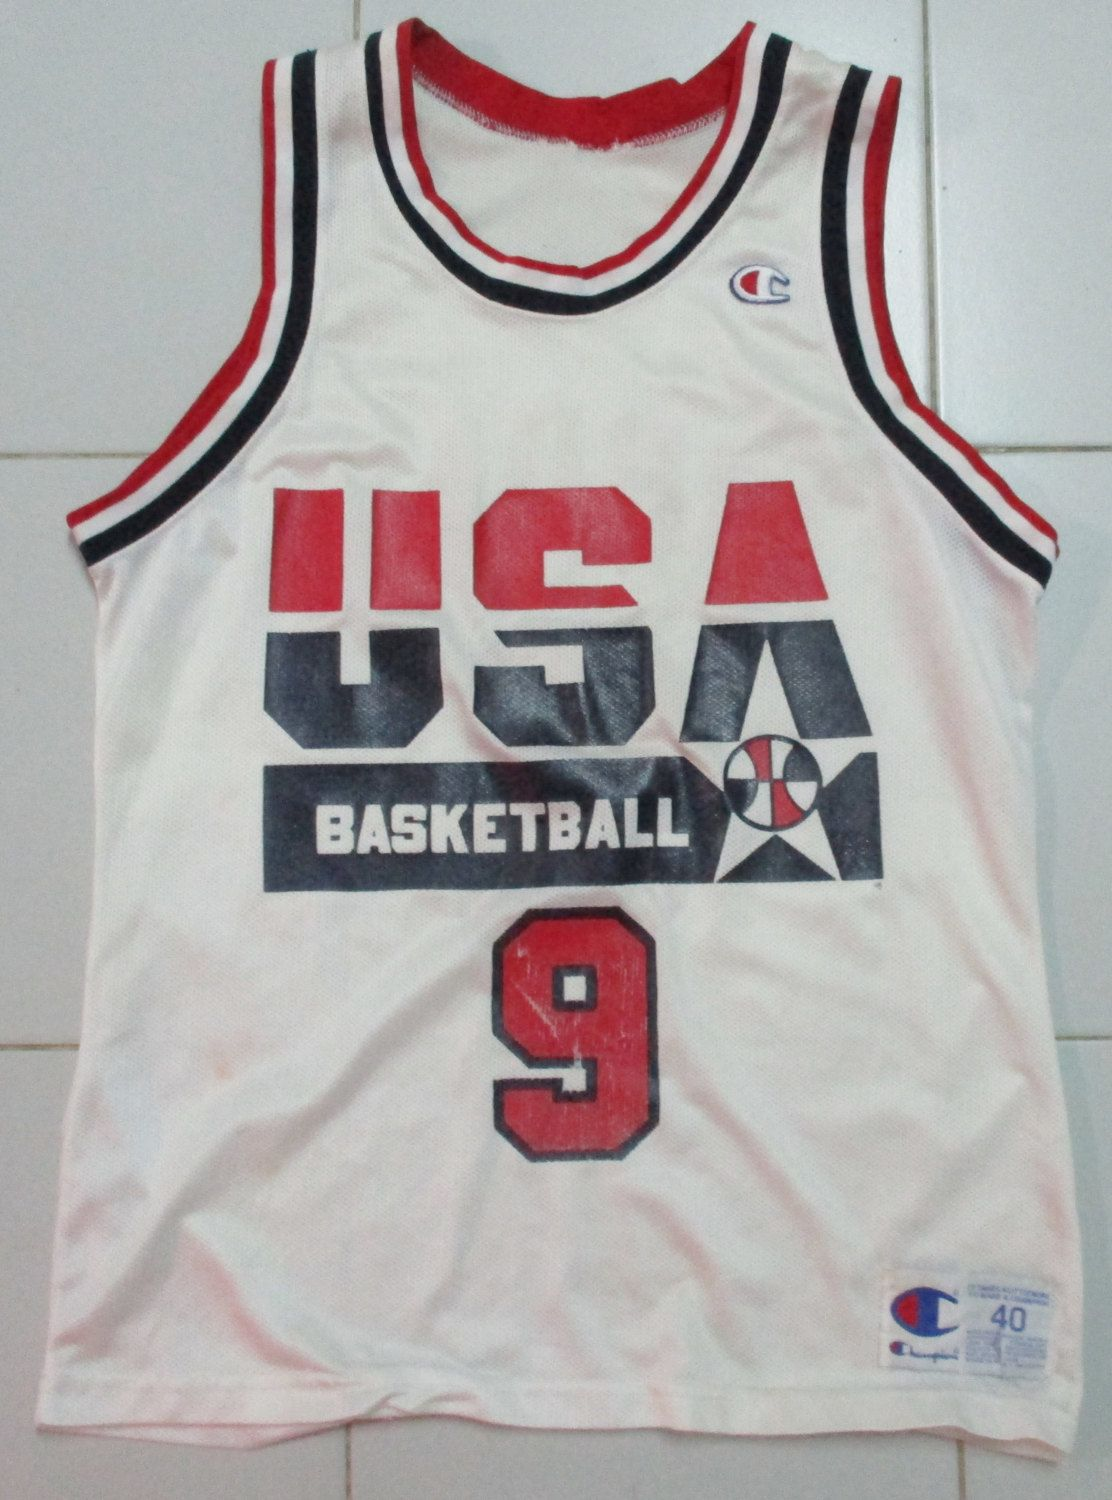 b0404e2cdb064 Vintage 90s champion jersey basketball USA team micheal jordan NBA size 40  very rare!! by OHCHYVINTAGE on Etsy